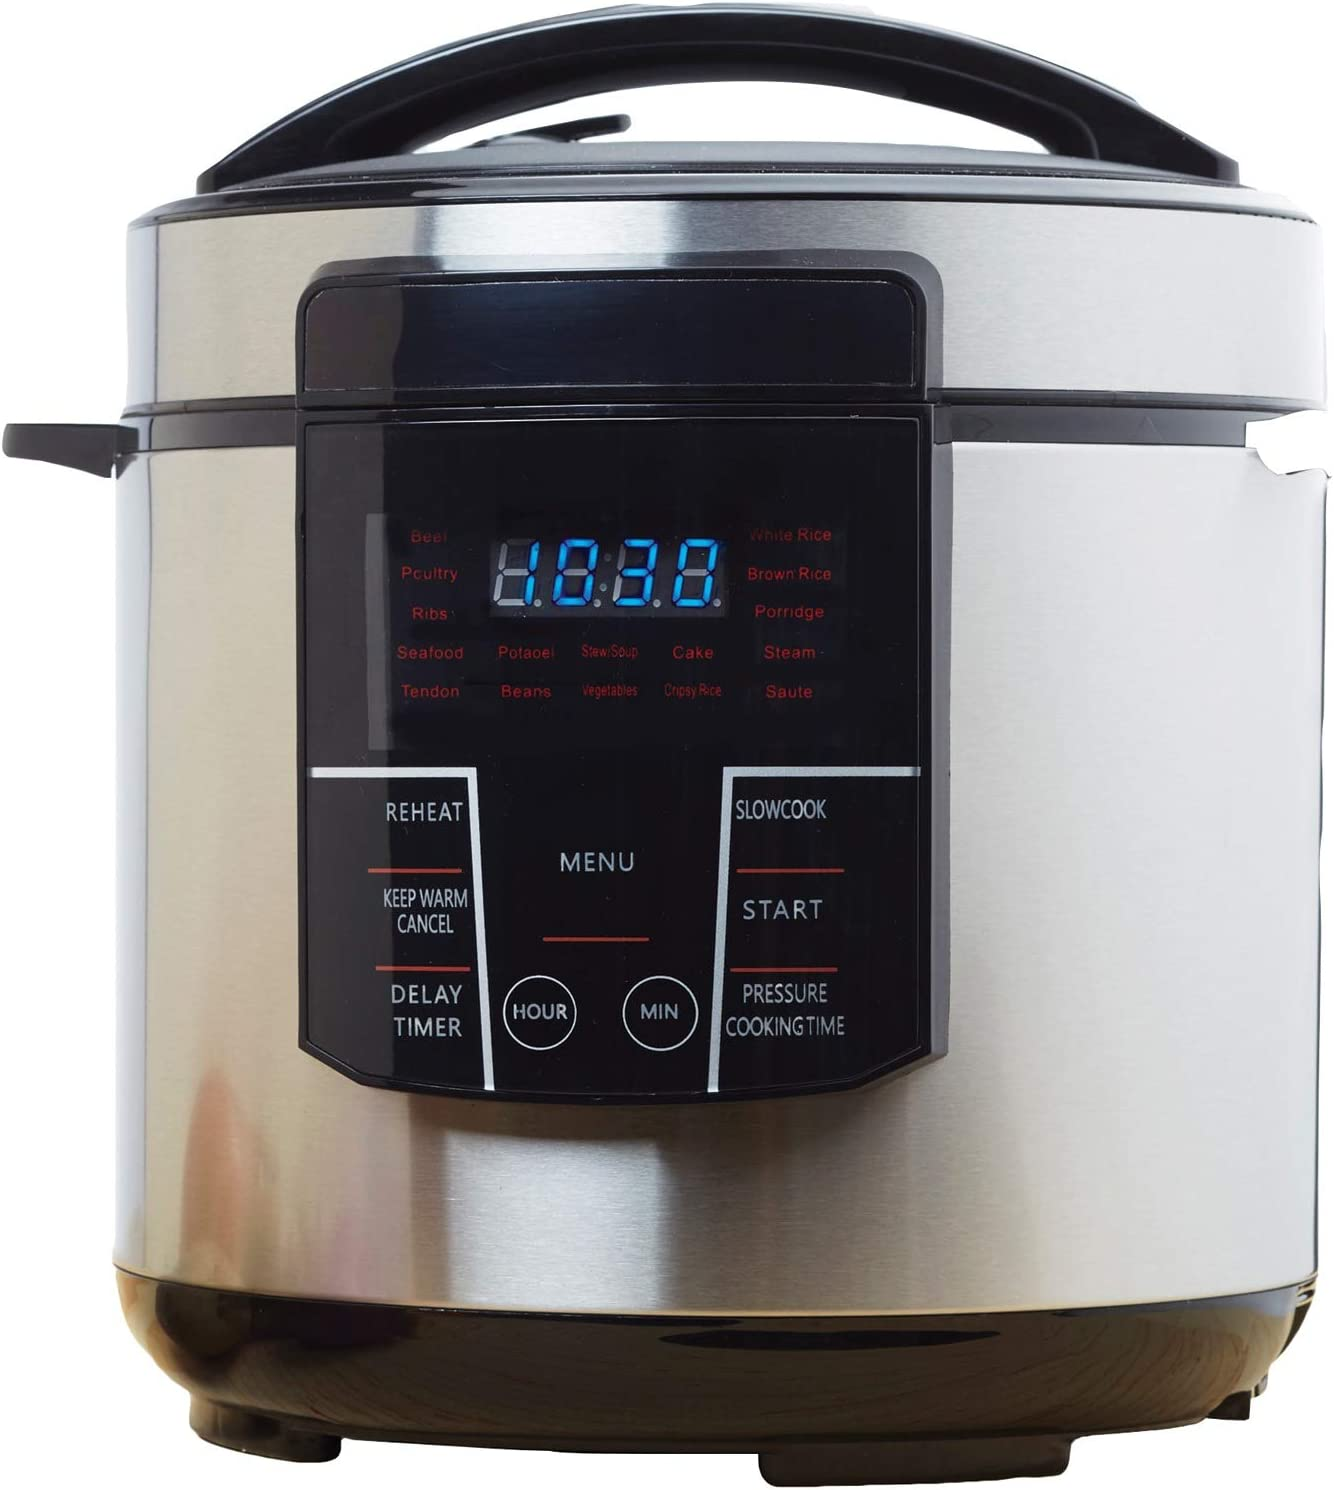 Brentwood Epc-626 Cooker - 1.50 Gal - Black, Stainless Steel